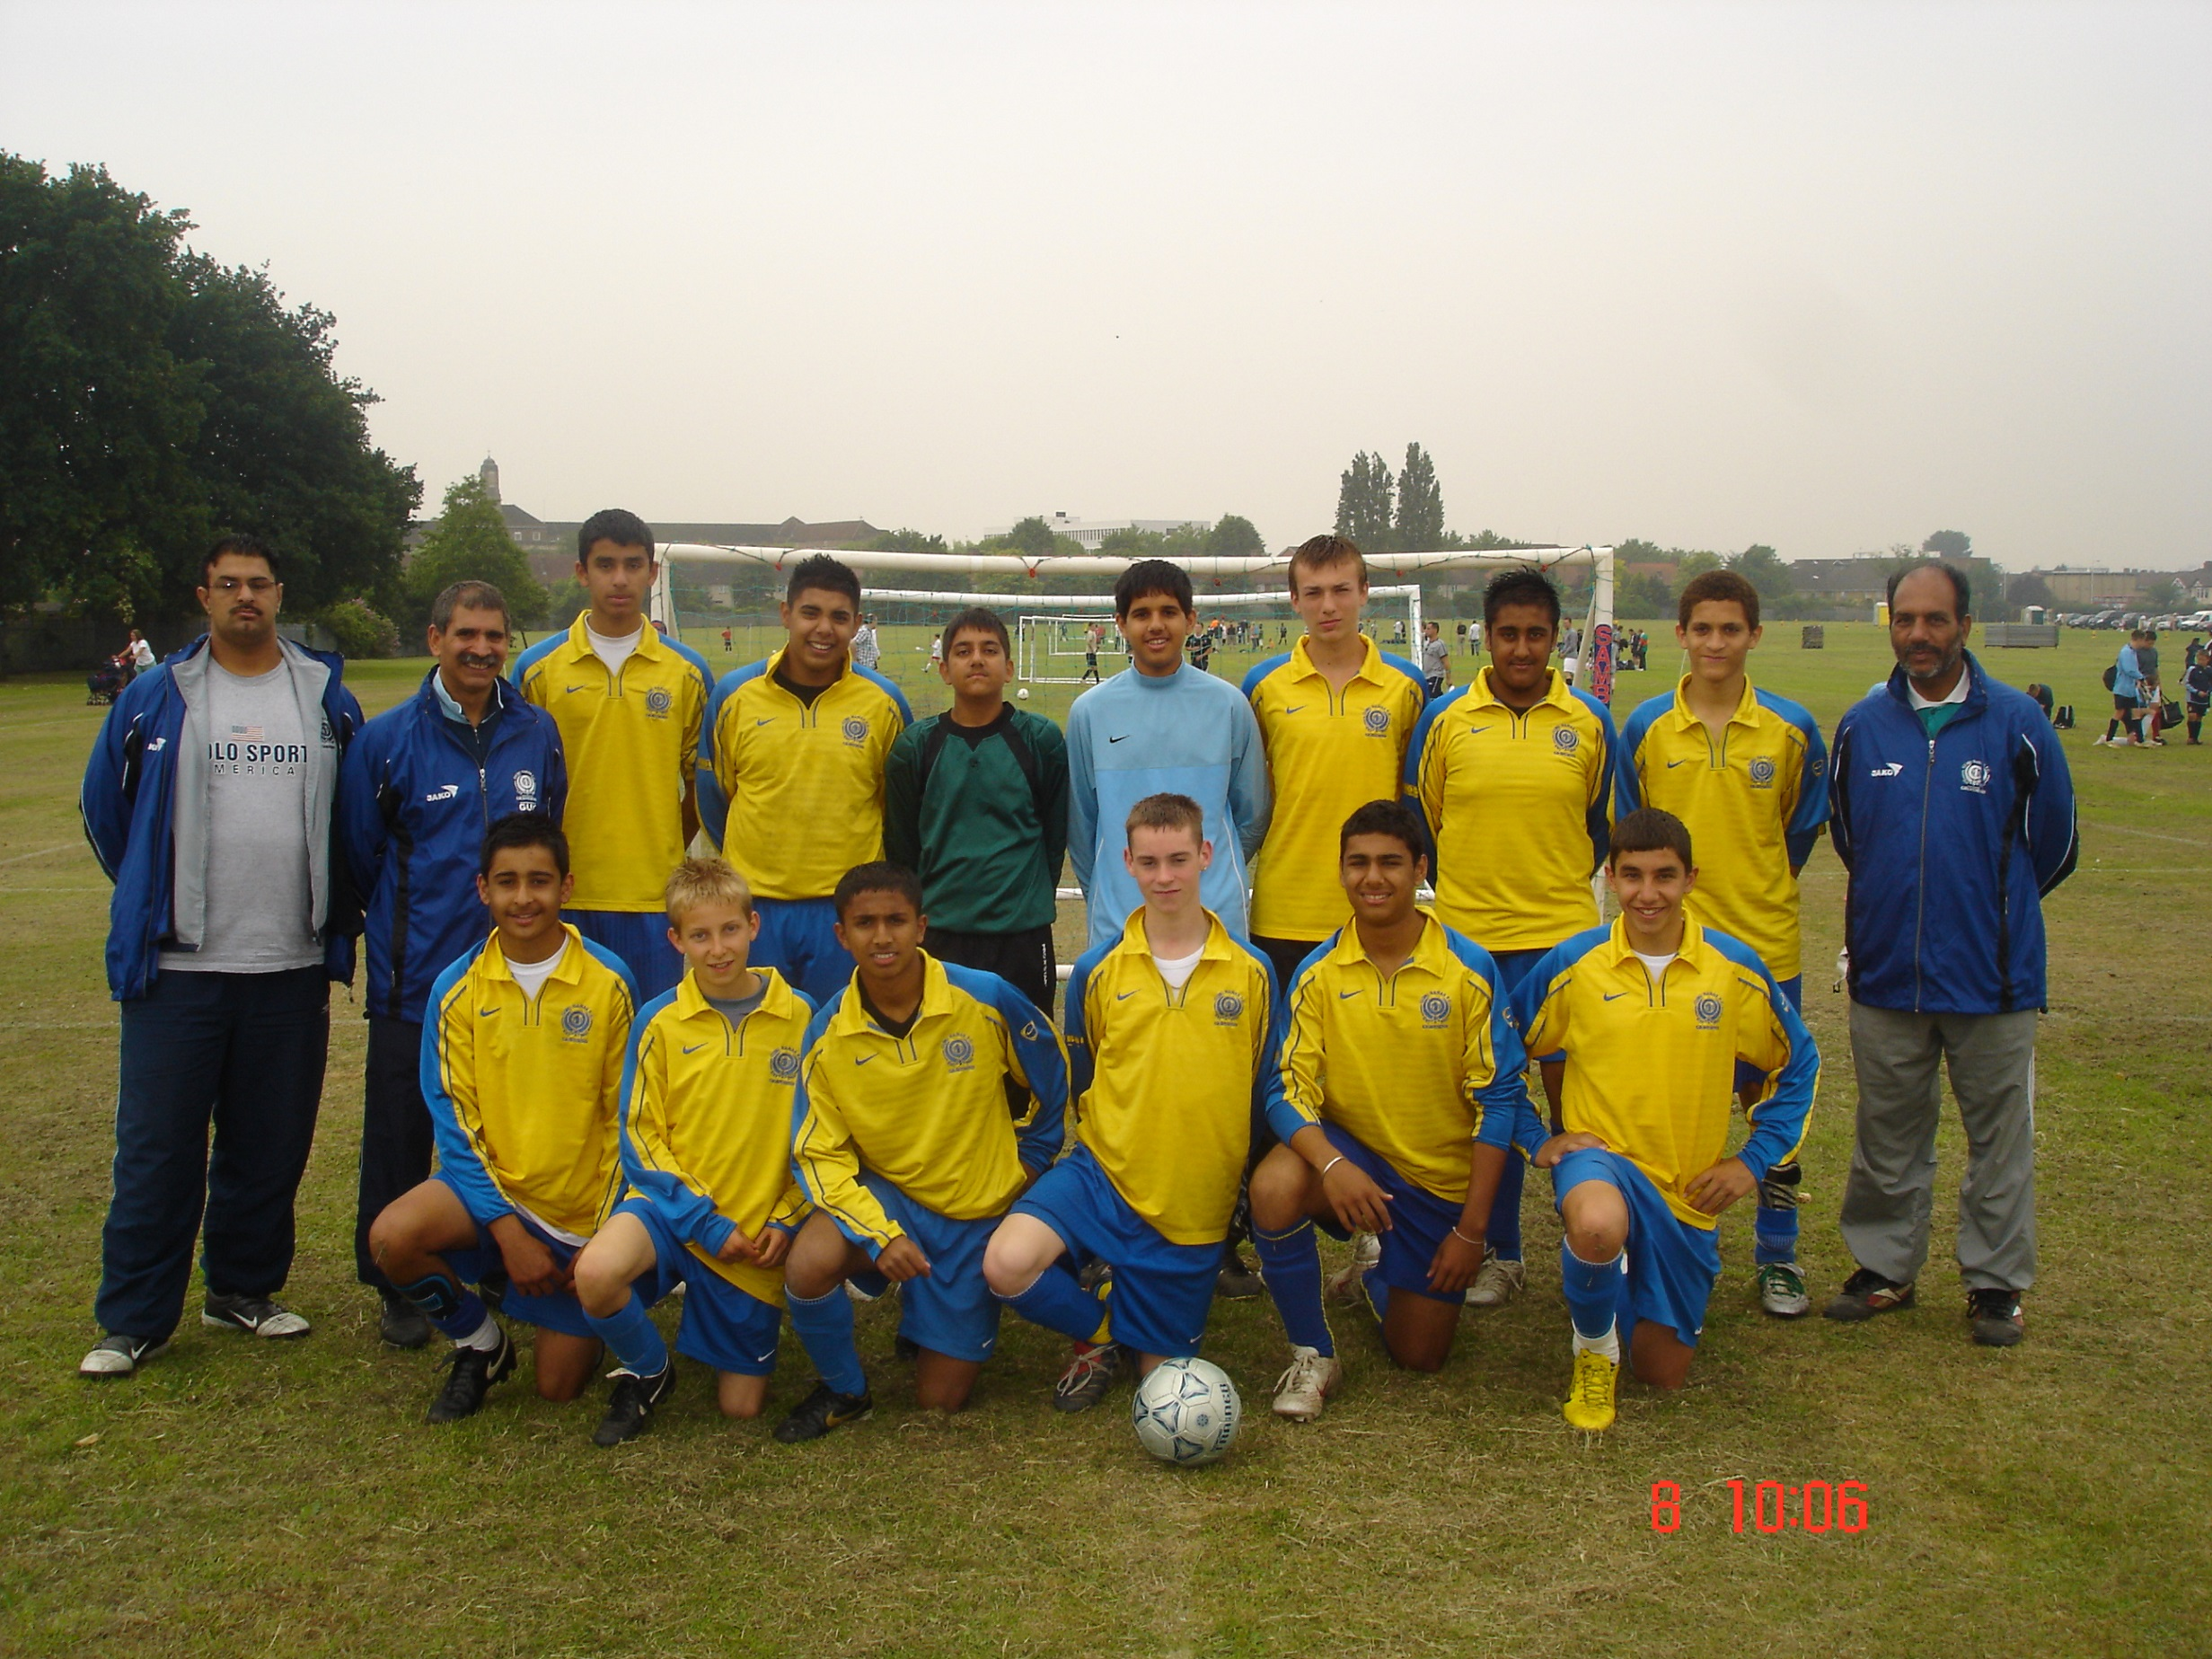 U15s at Barking 2007